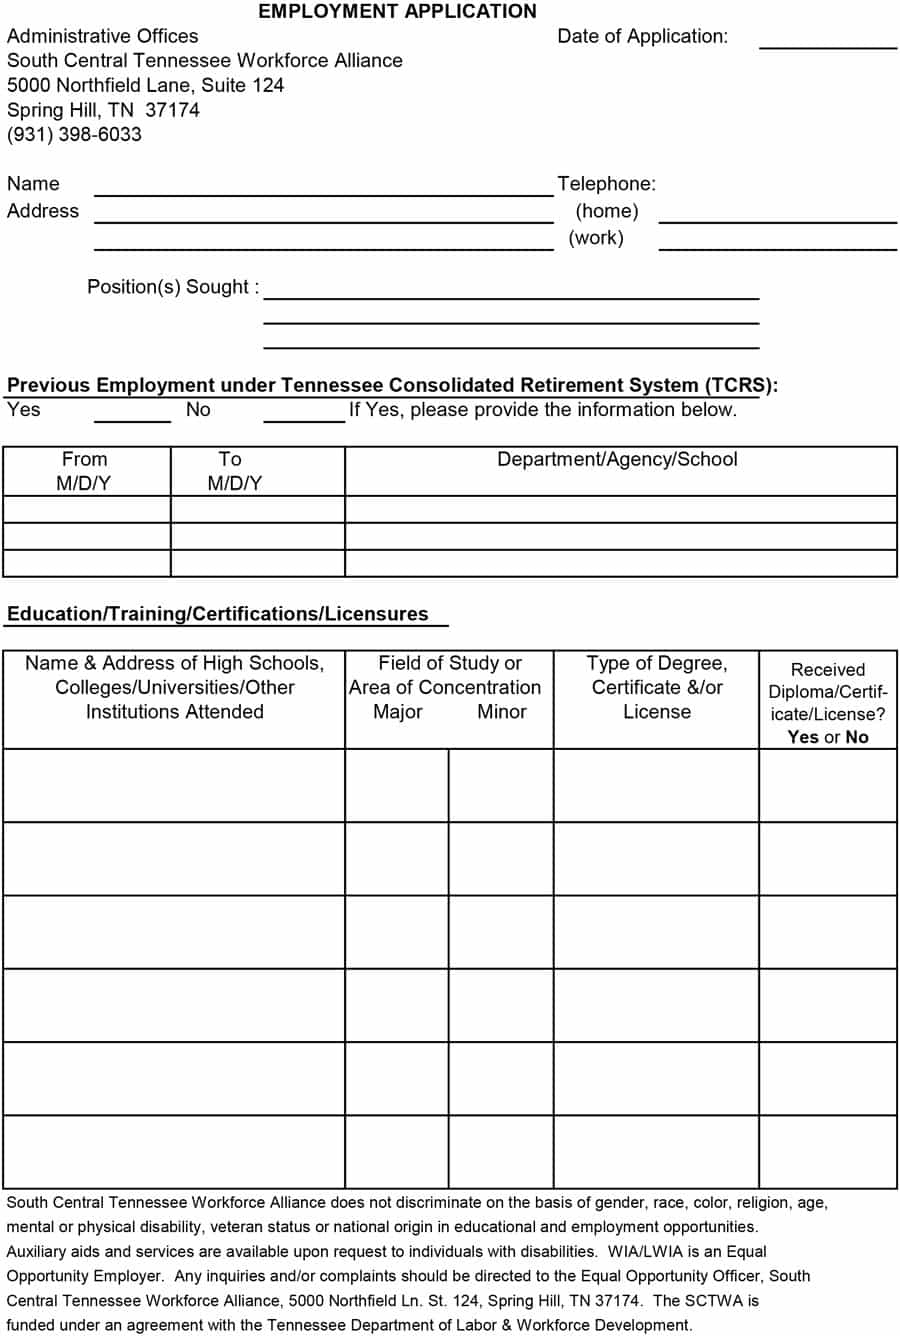 50 Free Employment / Job Application Form Templates [Printable - Application For Employment Form Free Printable